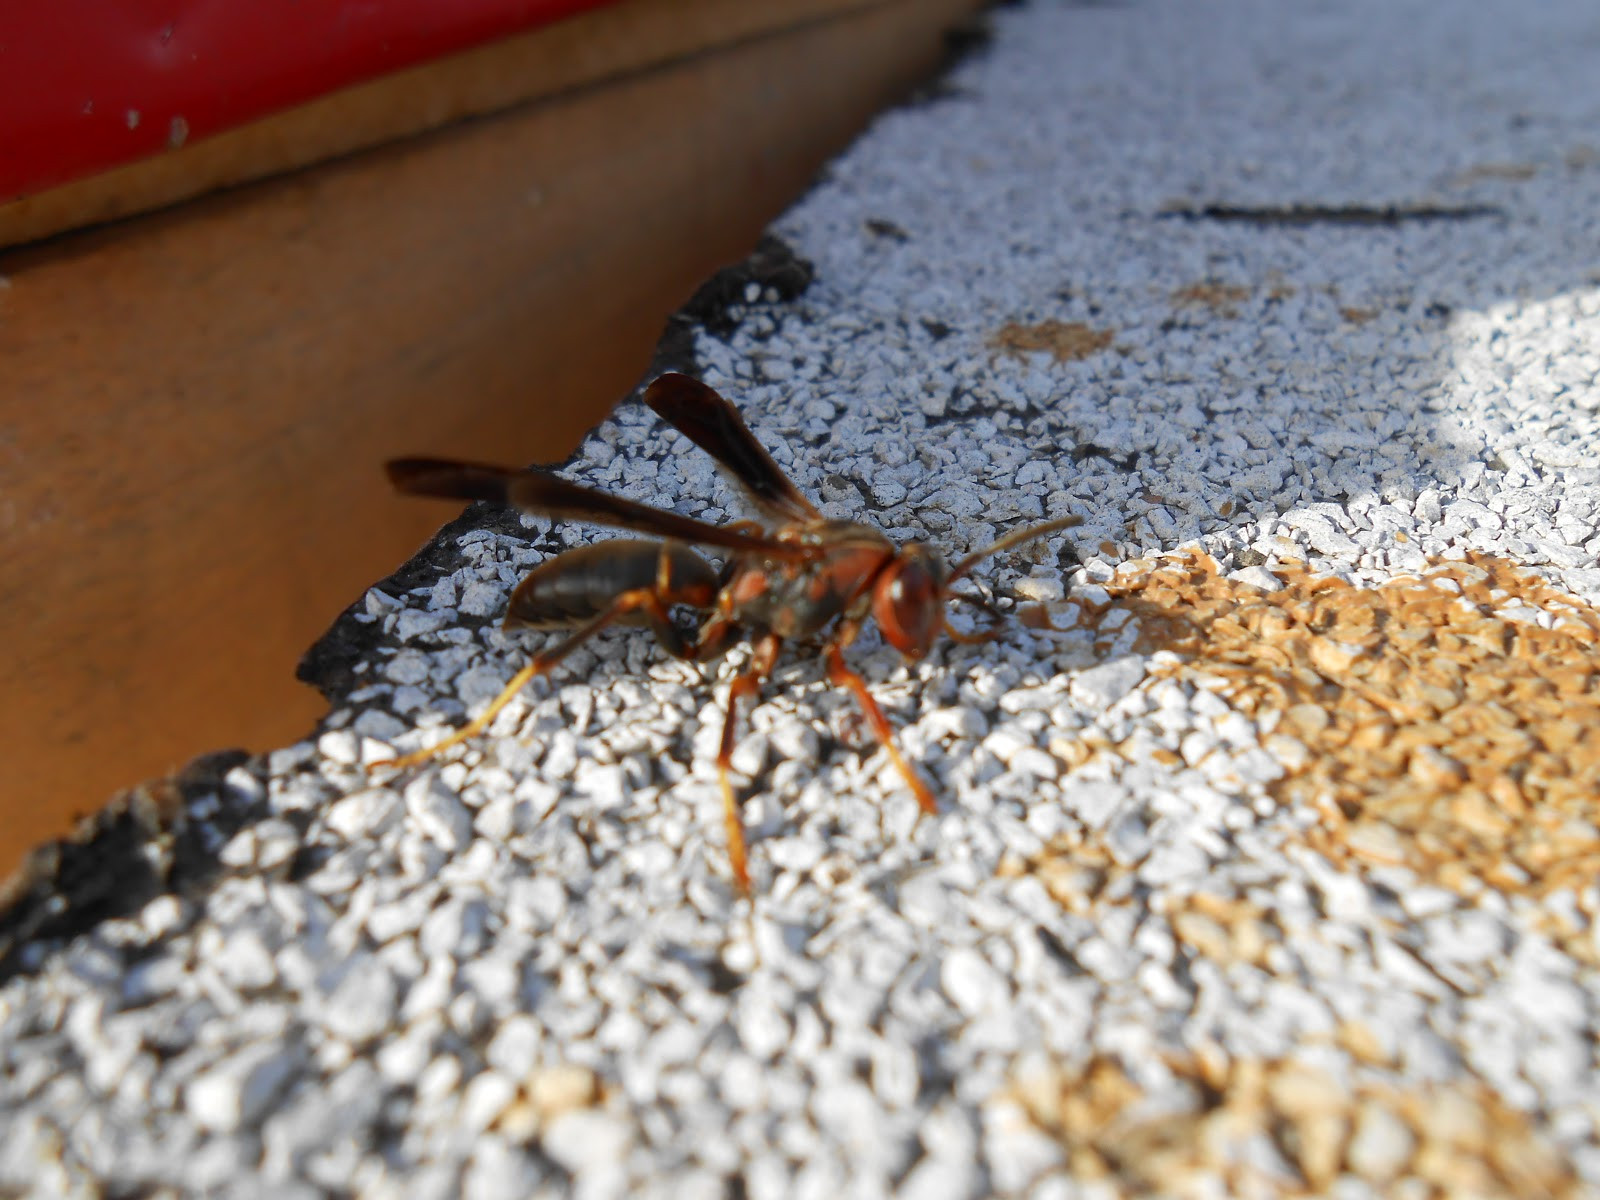 Best ideas about DIY Wasp Killer . Save or Pin Homemade Wasp Killer Spray Now.